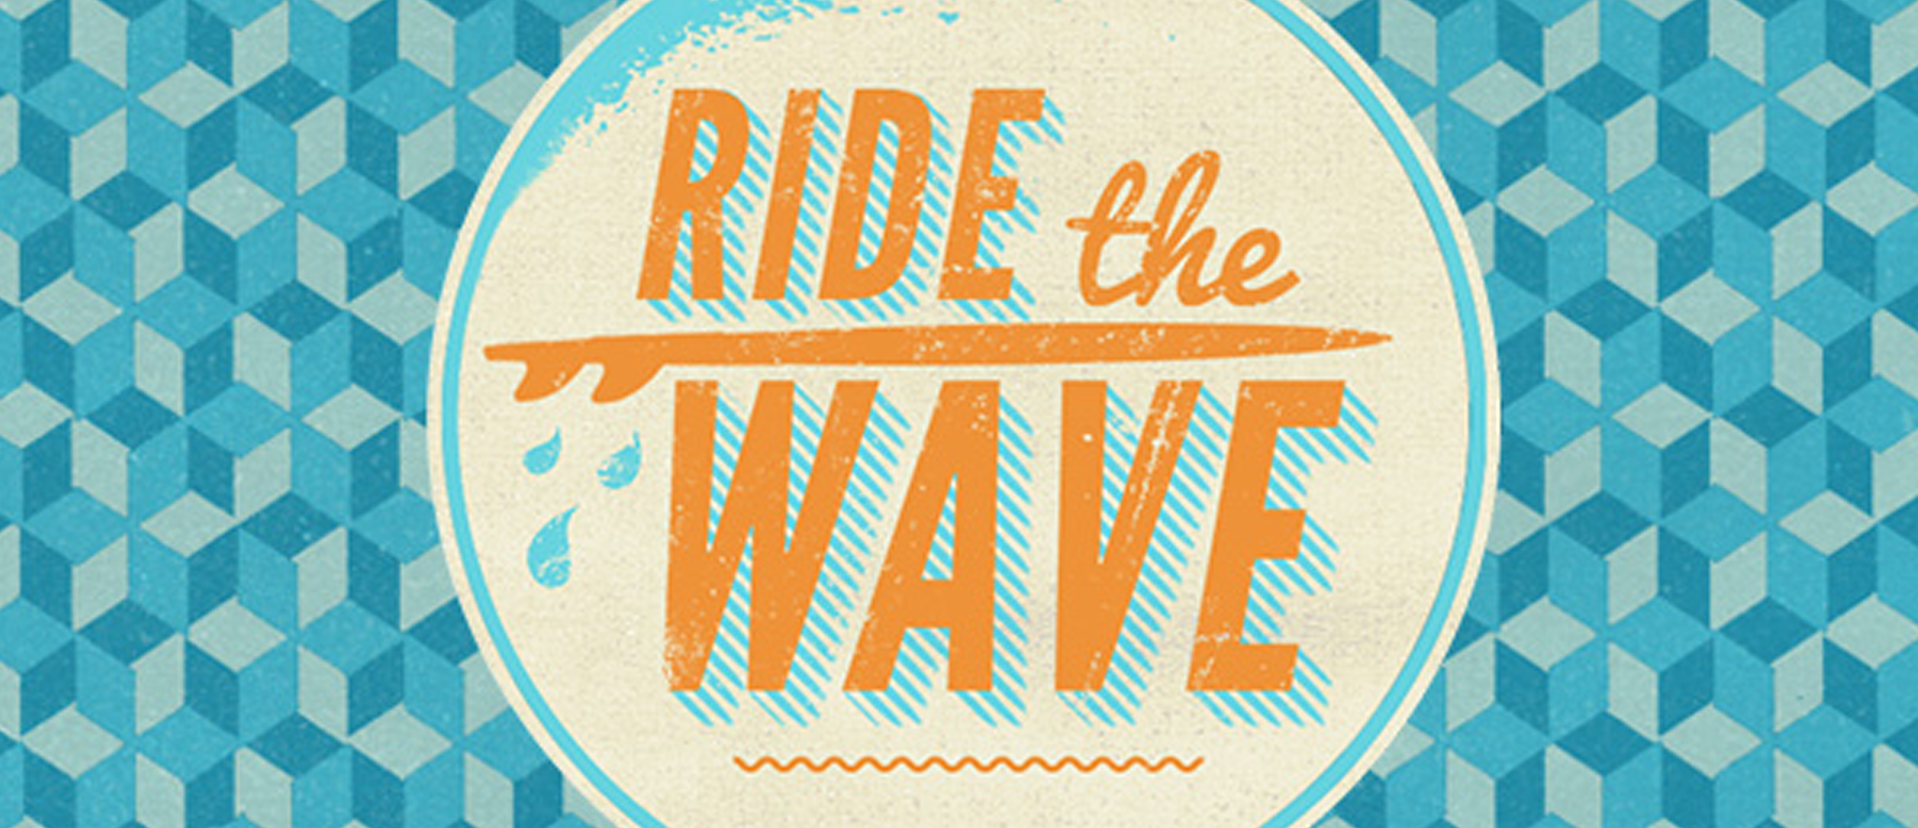 Website_Series_Header_Ride_The_Wave.jpg